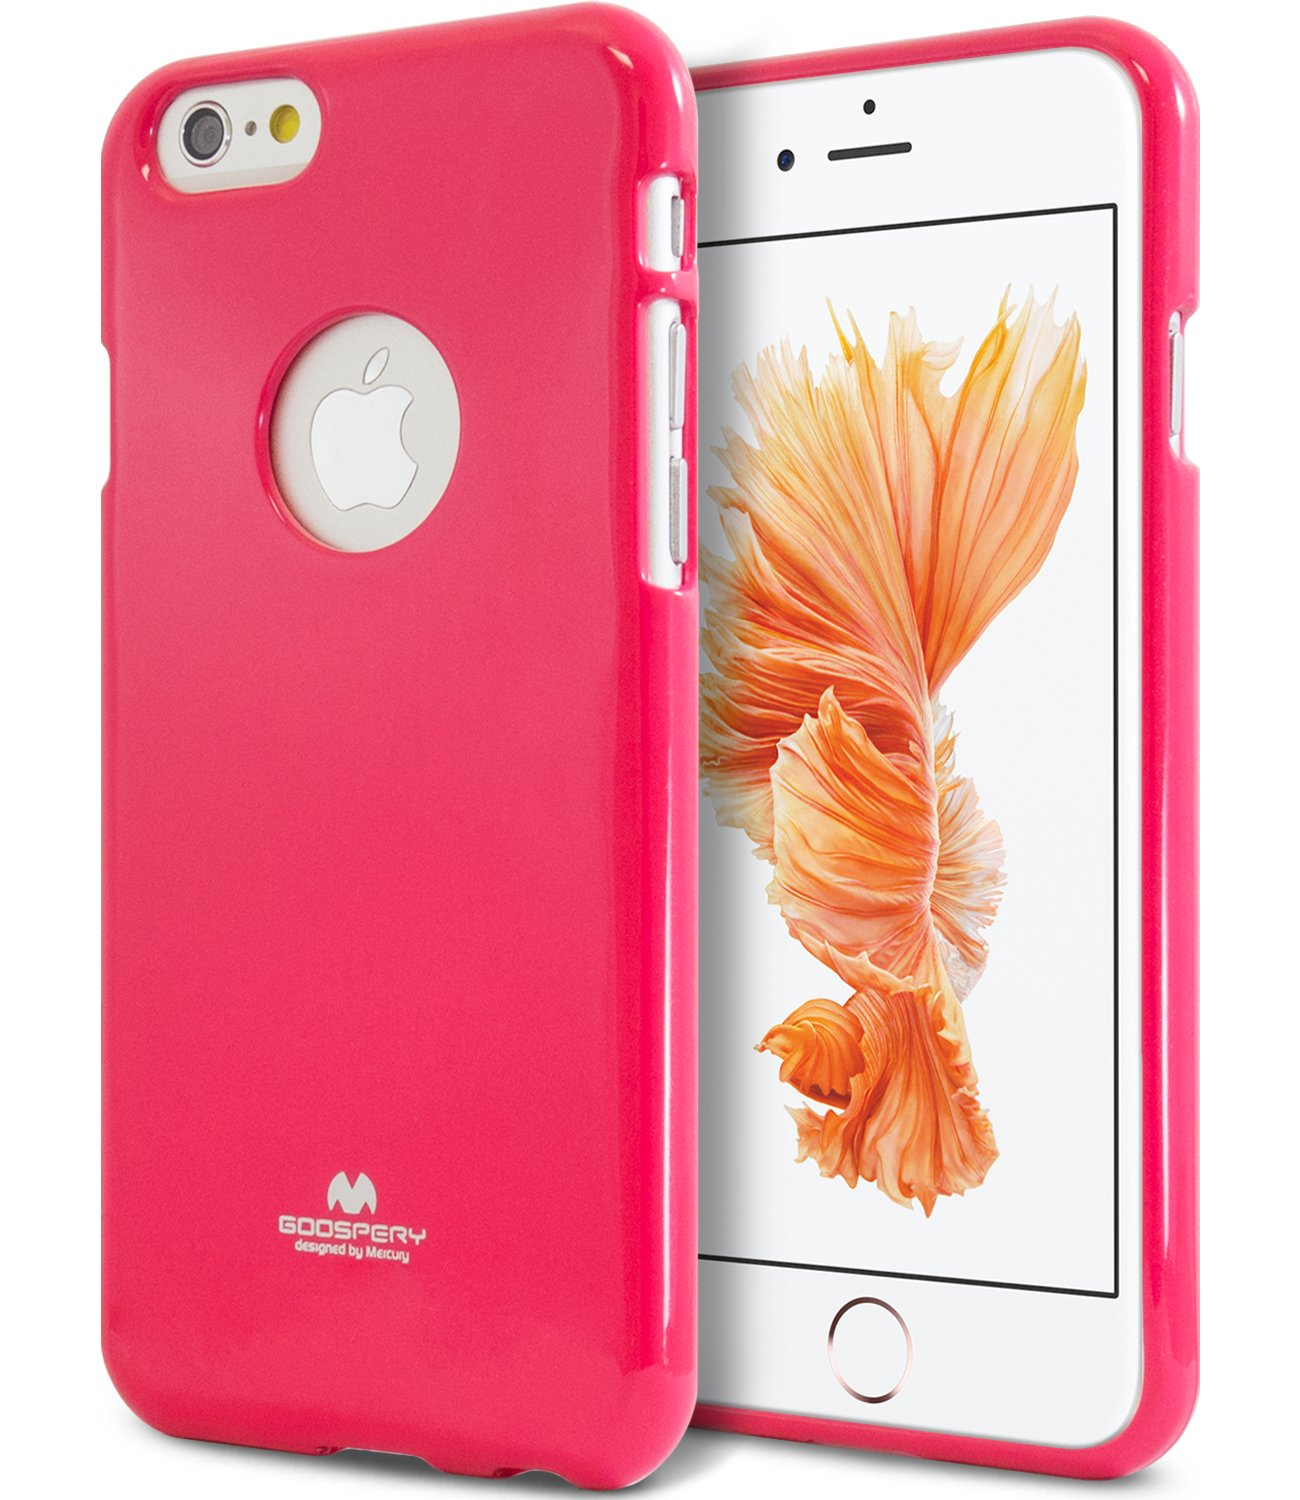 100% authentic 145ac 7e7a7 iPhone 6 Case, iPhone 6s Case, [Thin Slim] GOOSPERY [Flexible] Color Pearl  Jelly Rubber TPU Case [Lightweight] Bumper Cover for Apple iPhone 6s/6 (HOT  ...